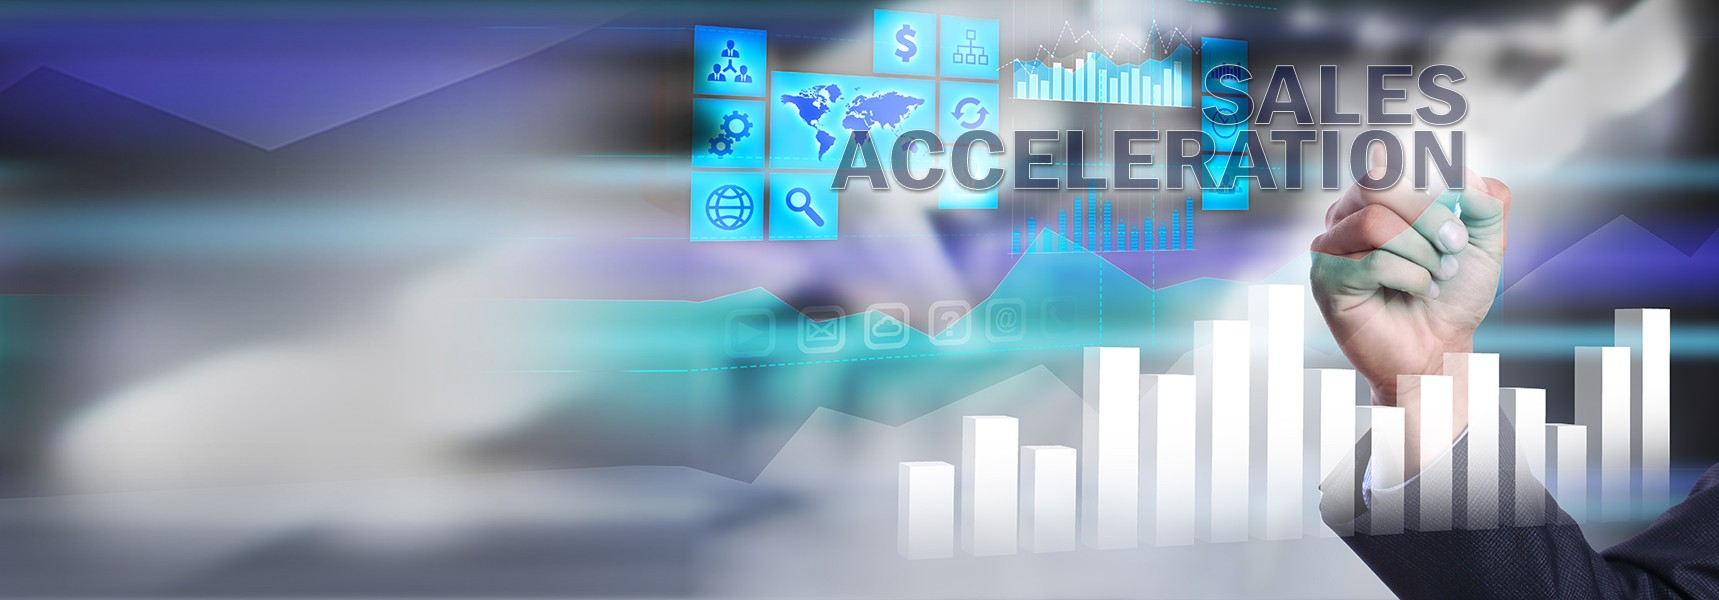 What is Sales Acceleration Software and why it is important?